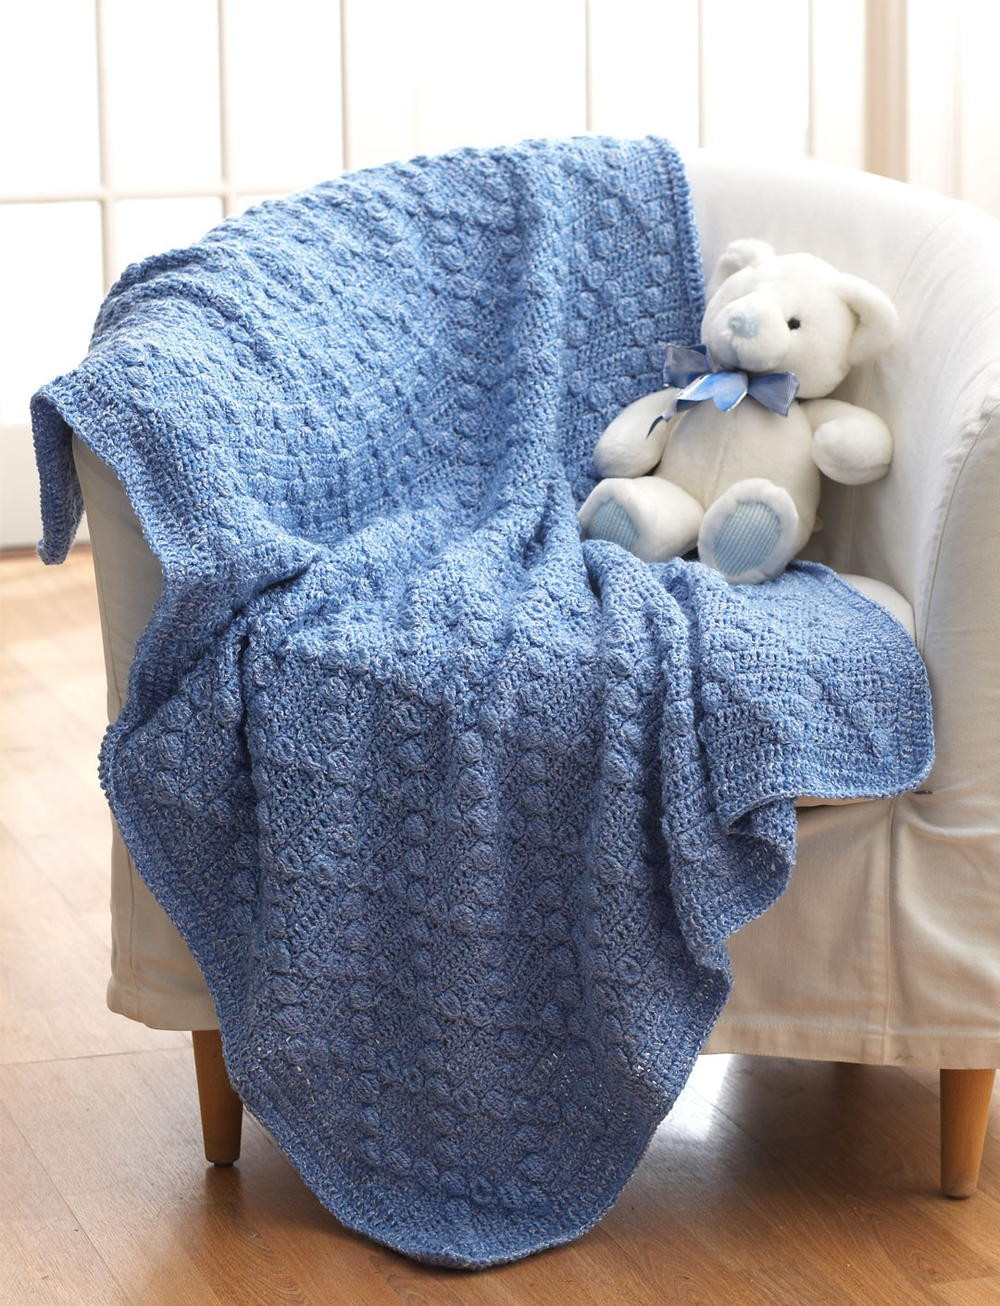 Baby Afghan Luxury Bumpy Baby Blanket Of Attractive 50 Pics Baby Afghan